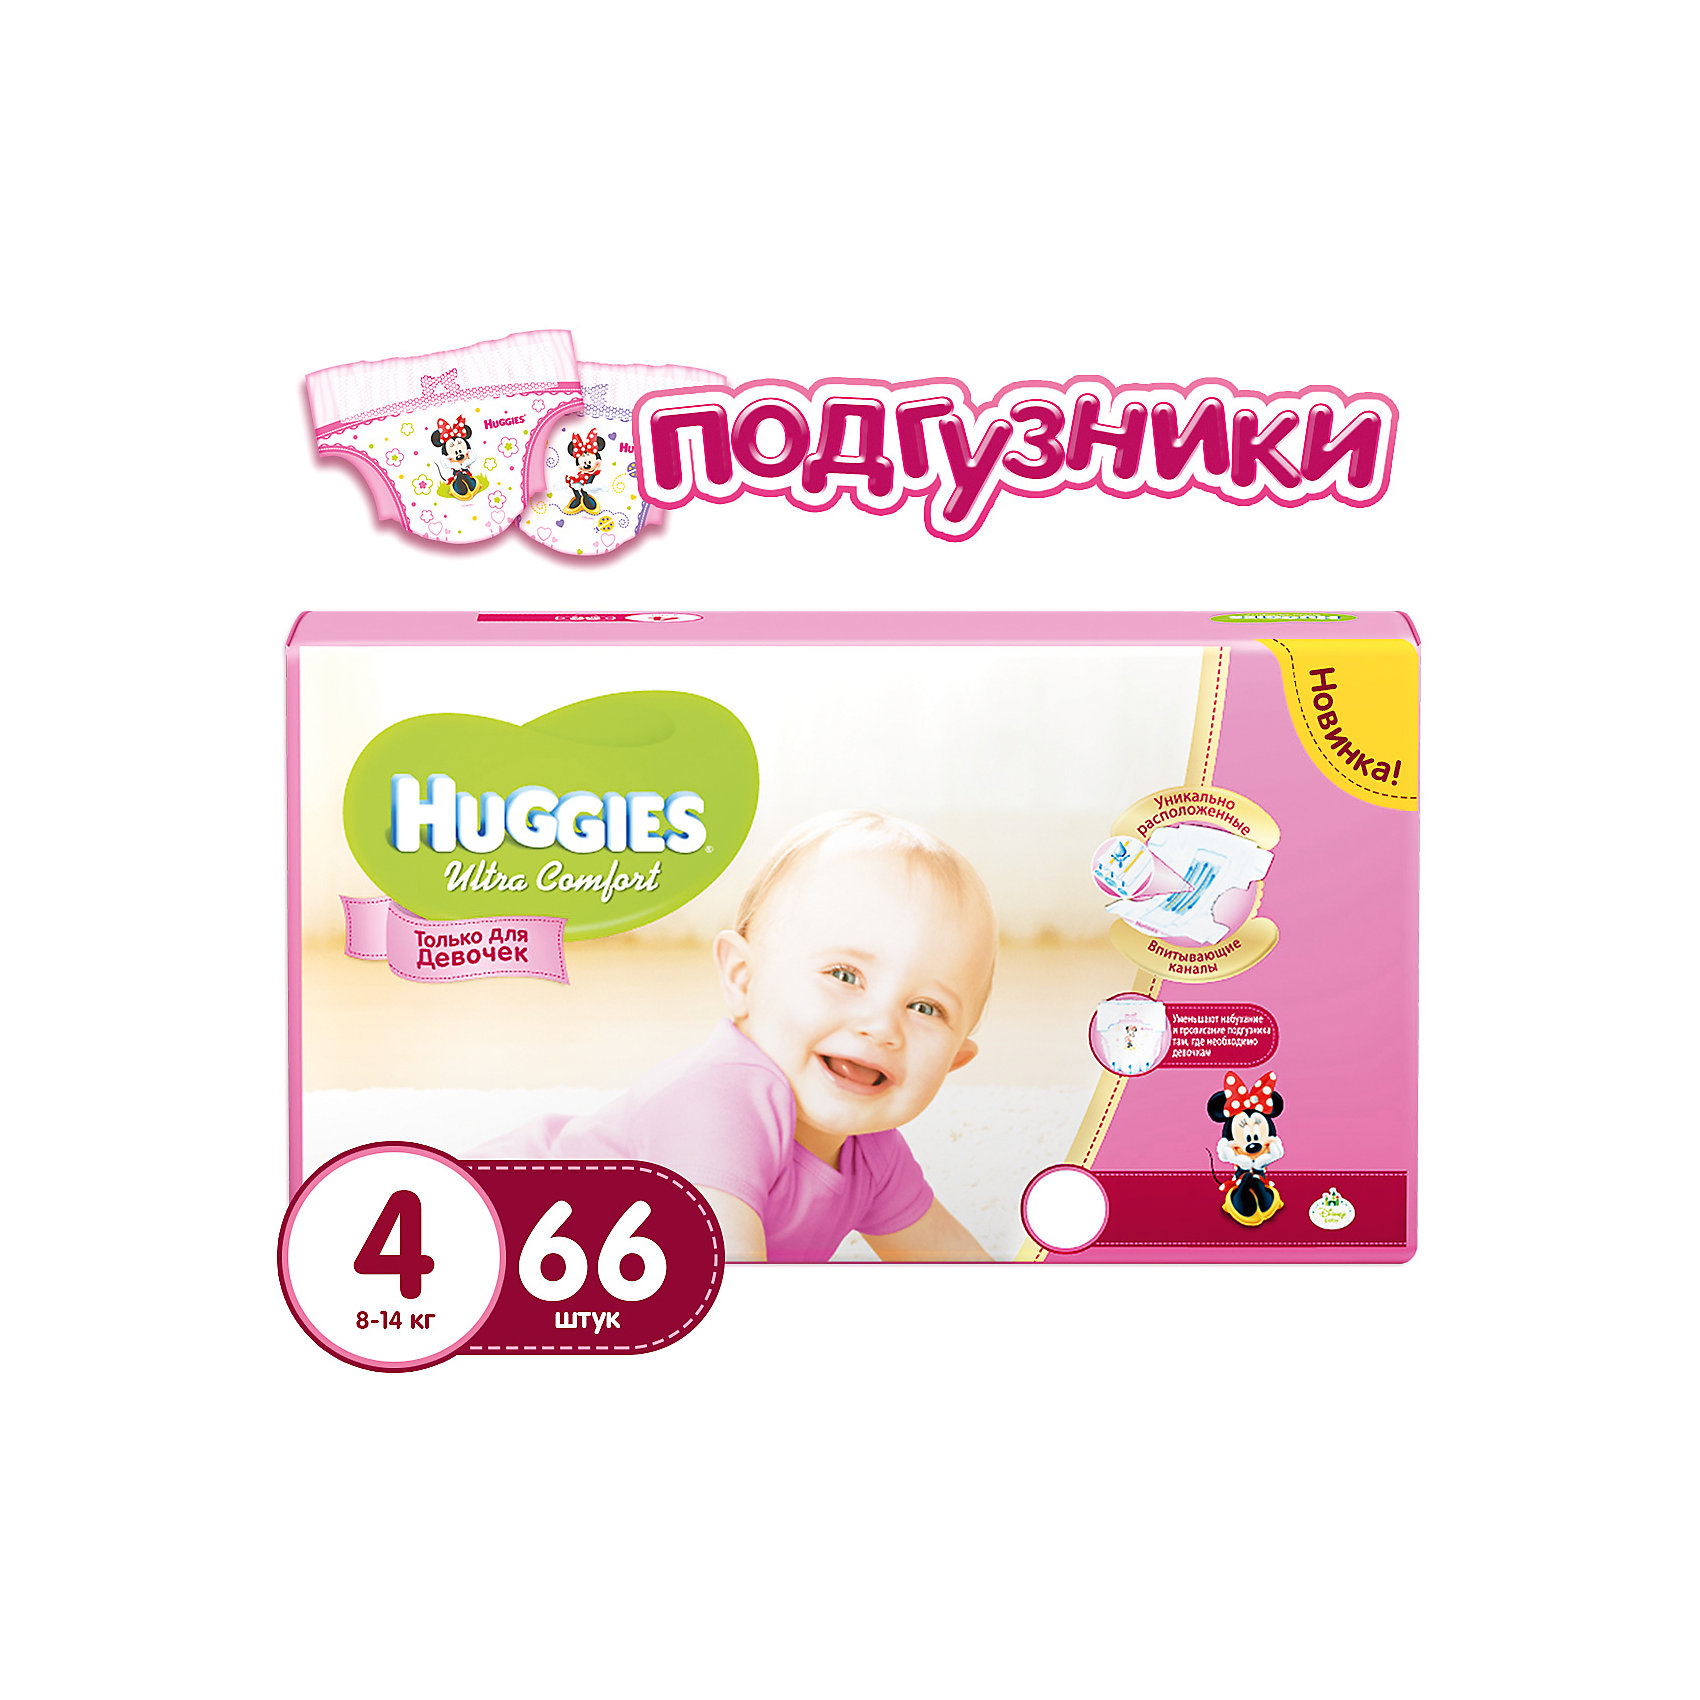 ���������� Huggies Ultra Comfort ��� ������� Mega Pack (4) 8-14 ��, 66 ��. (HUGGIES)